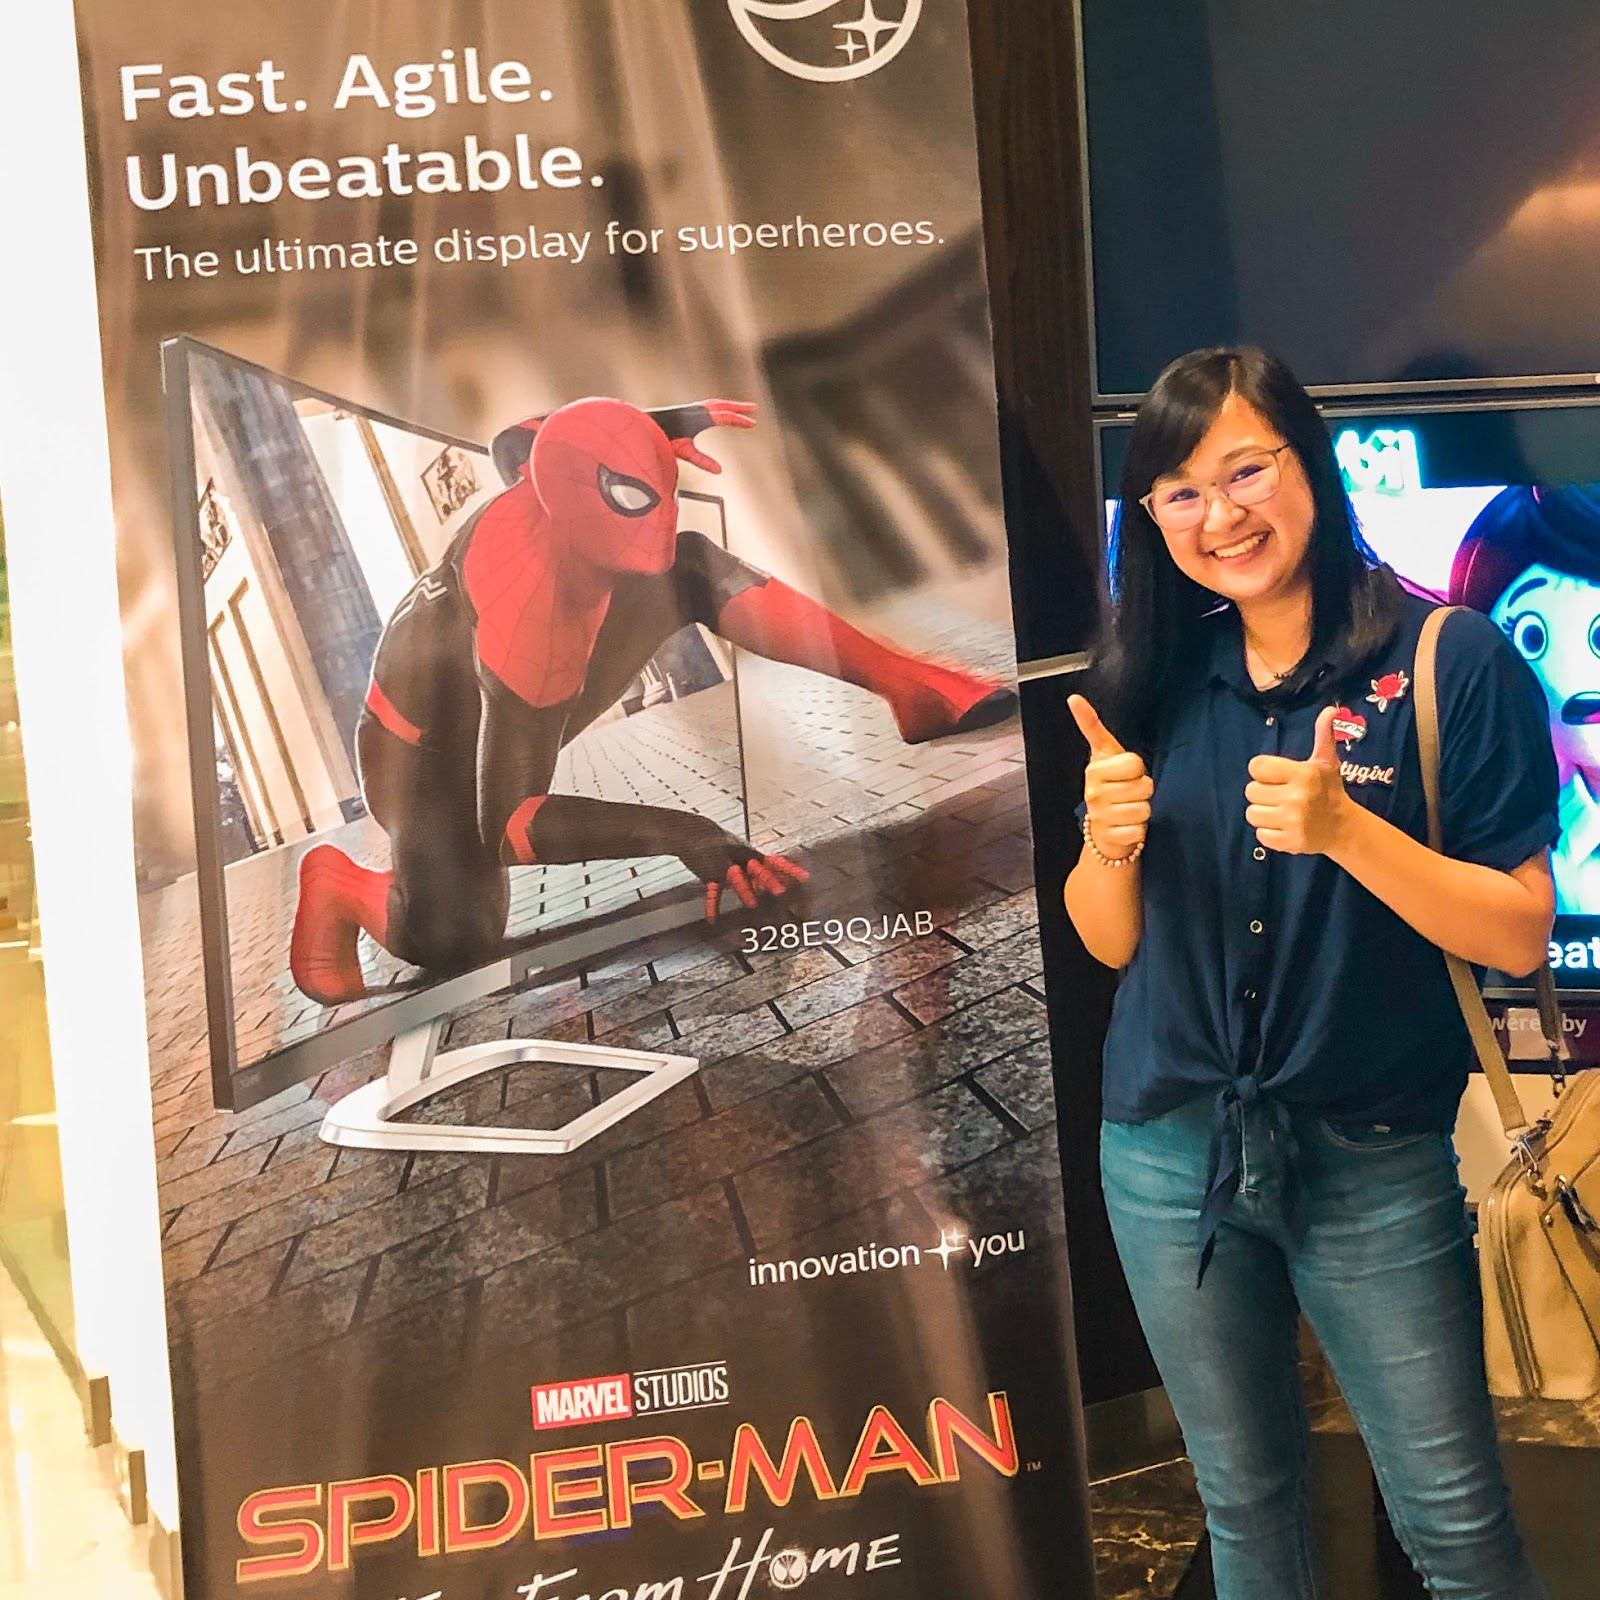 Spider-Man: Far From Home Movie Screening with Philips Monitors